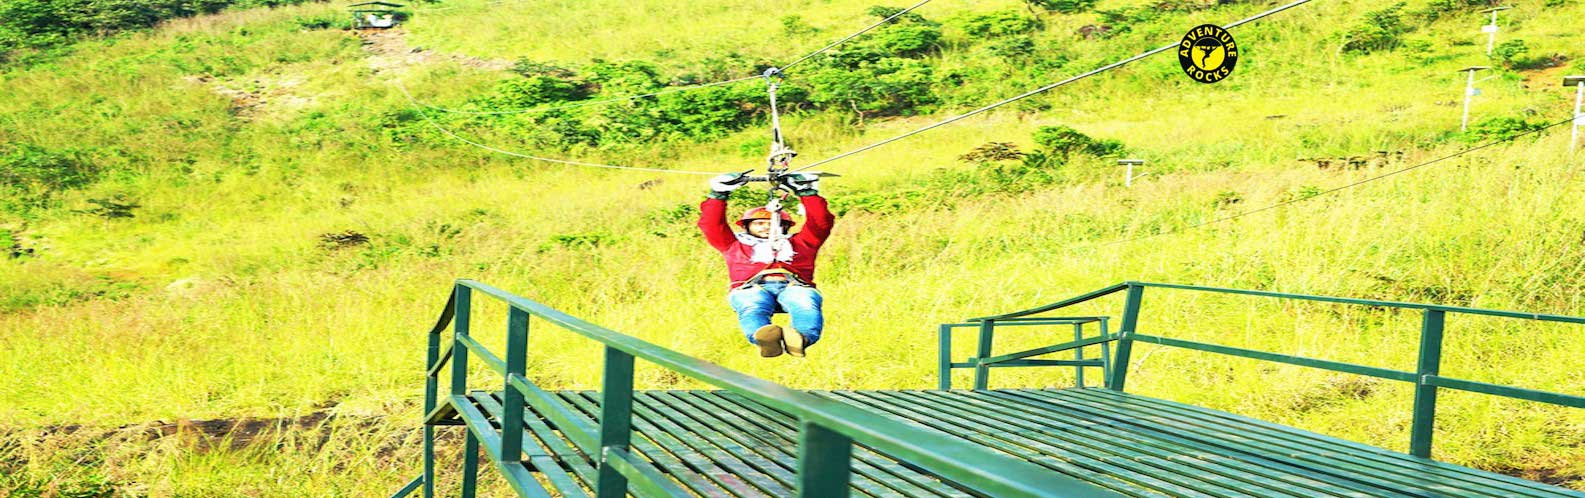 Zip Line Manufacturers in Tirupur